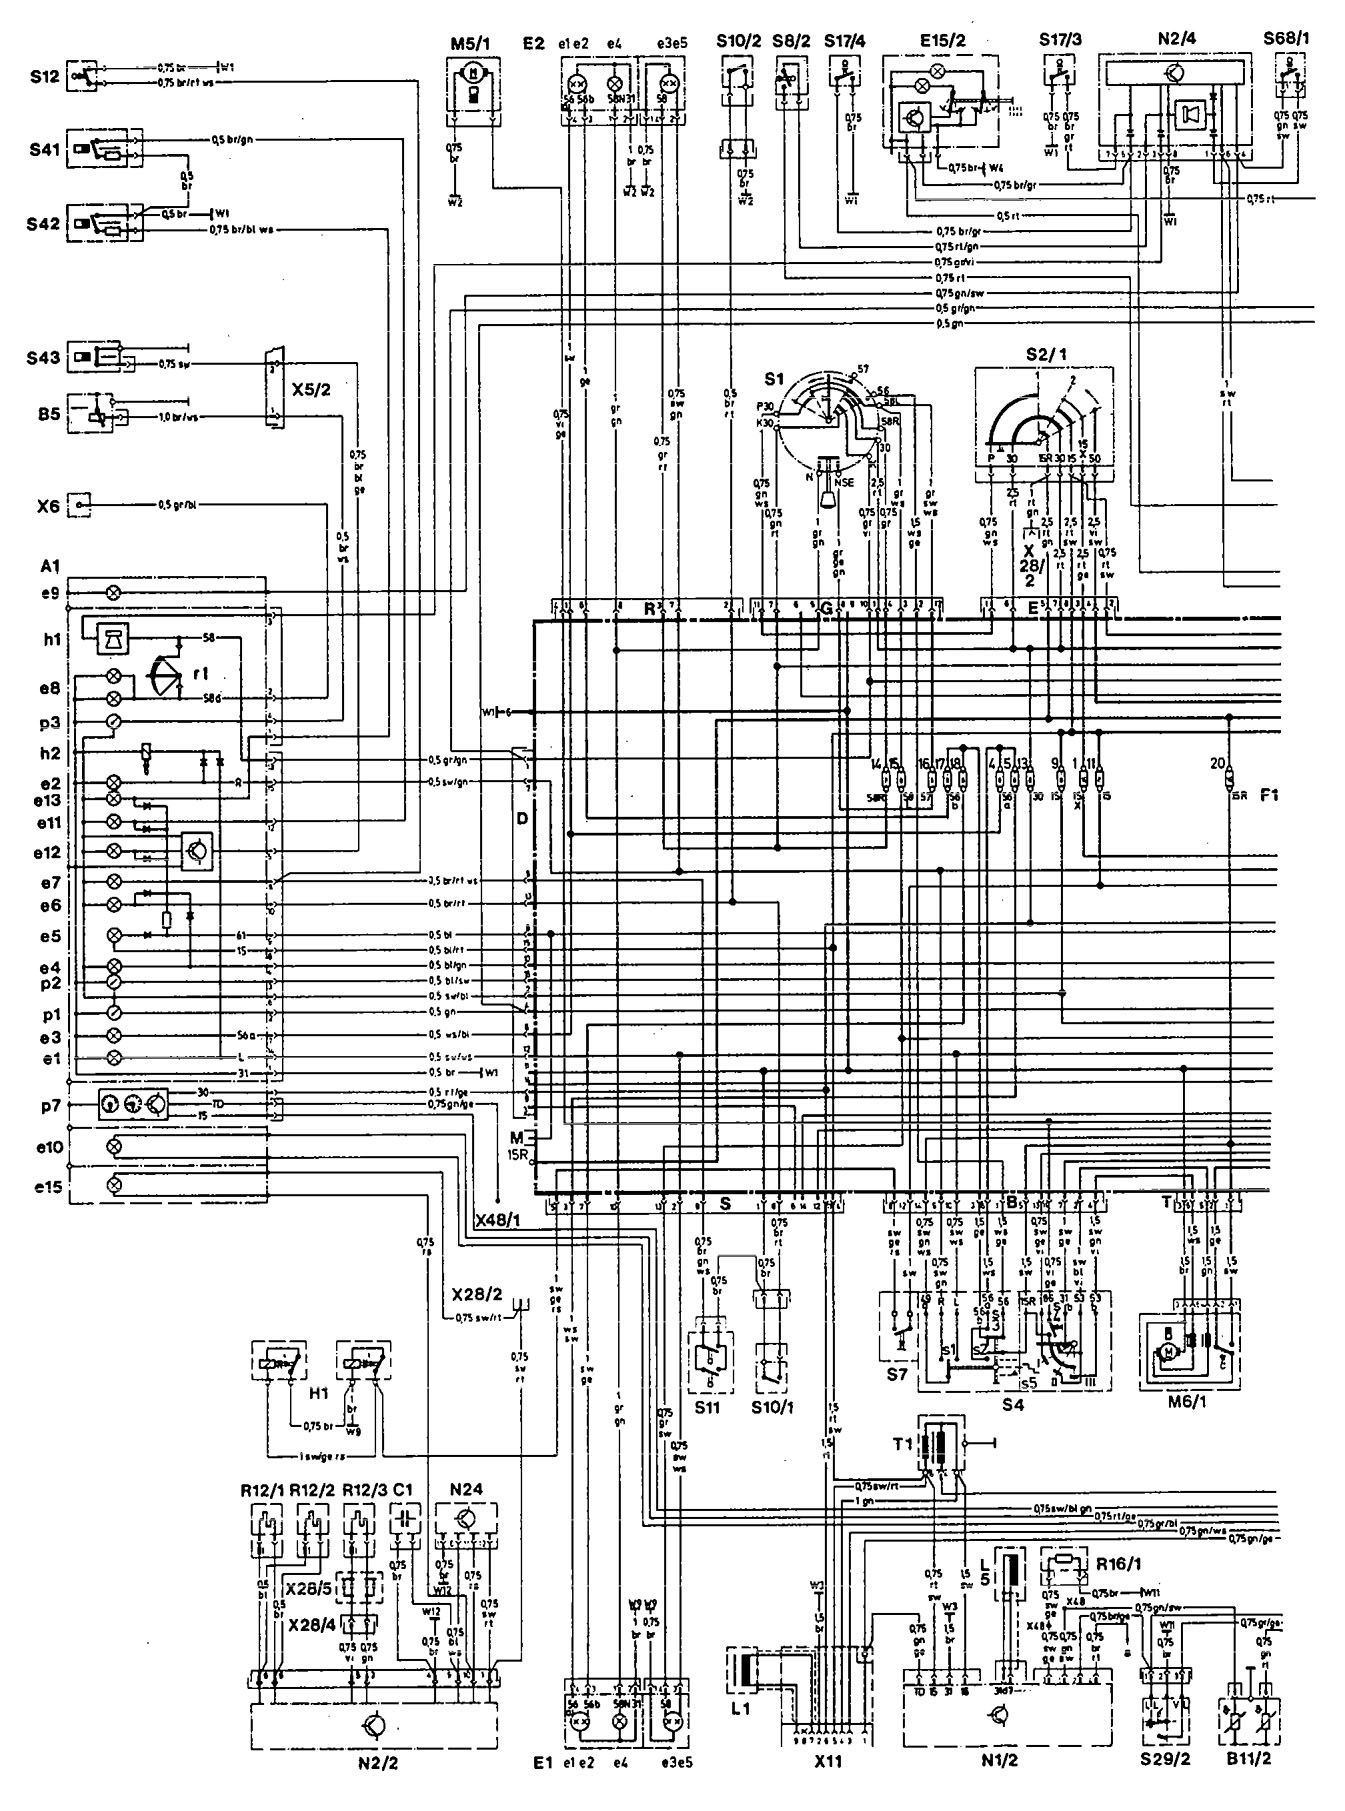 hight resolution of wiring diagram hose engineheater mercedes smart fortwo fuse box layout mercedes benz 190e wiring diagram charging